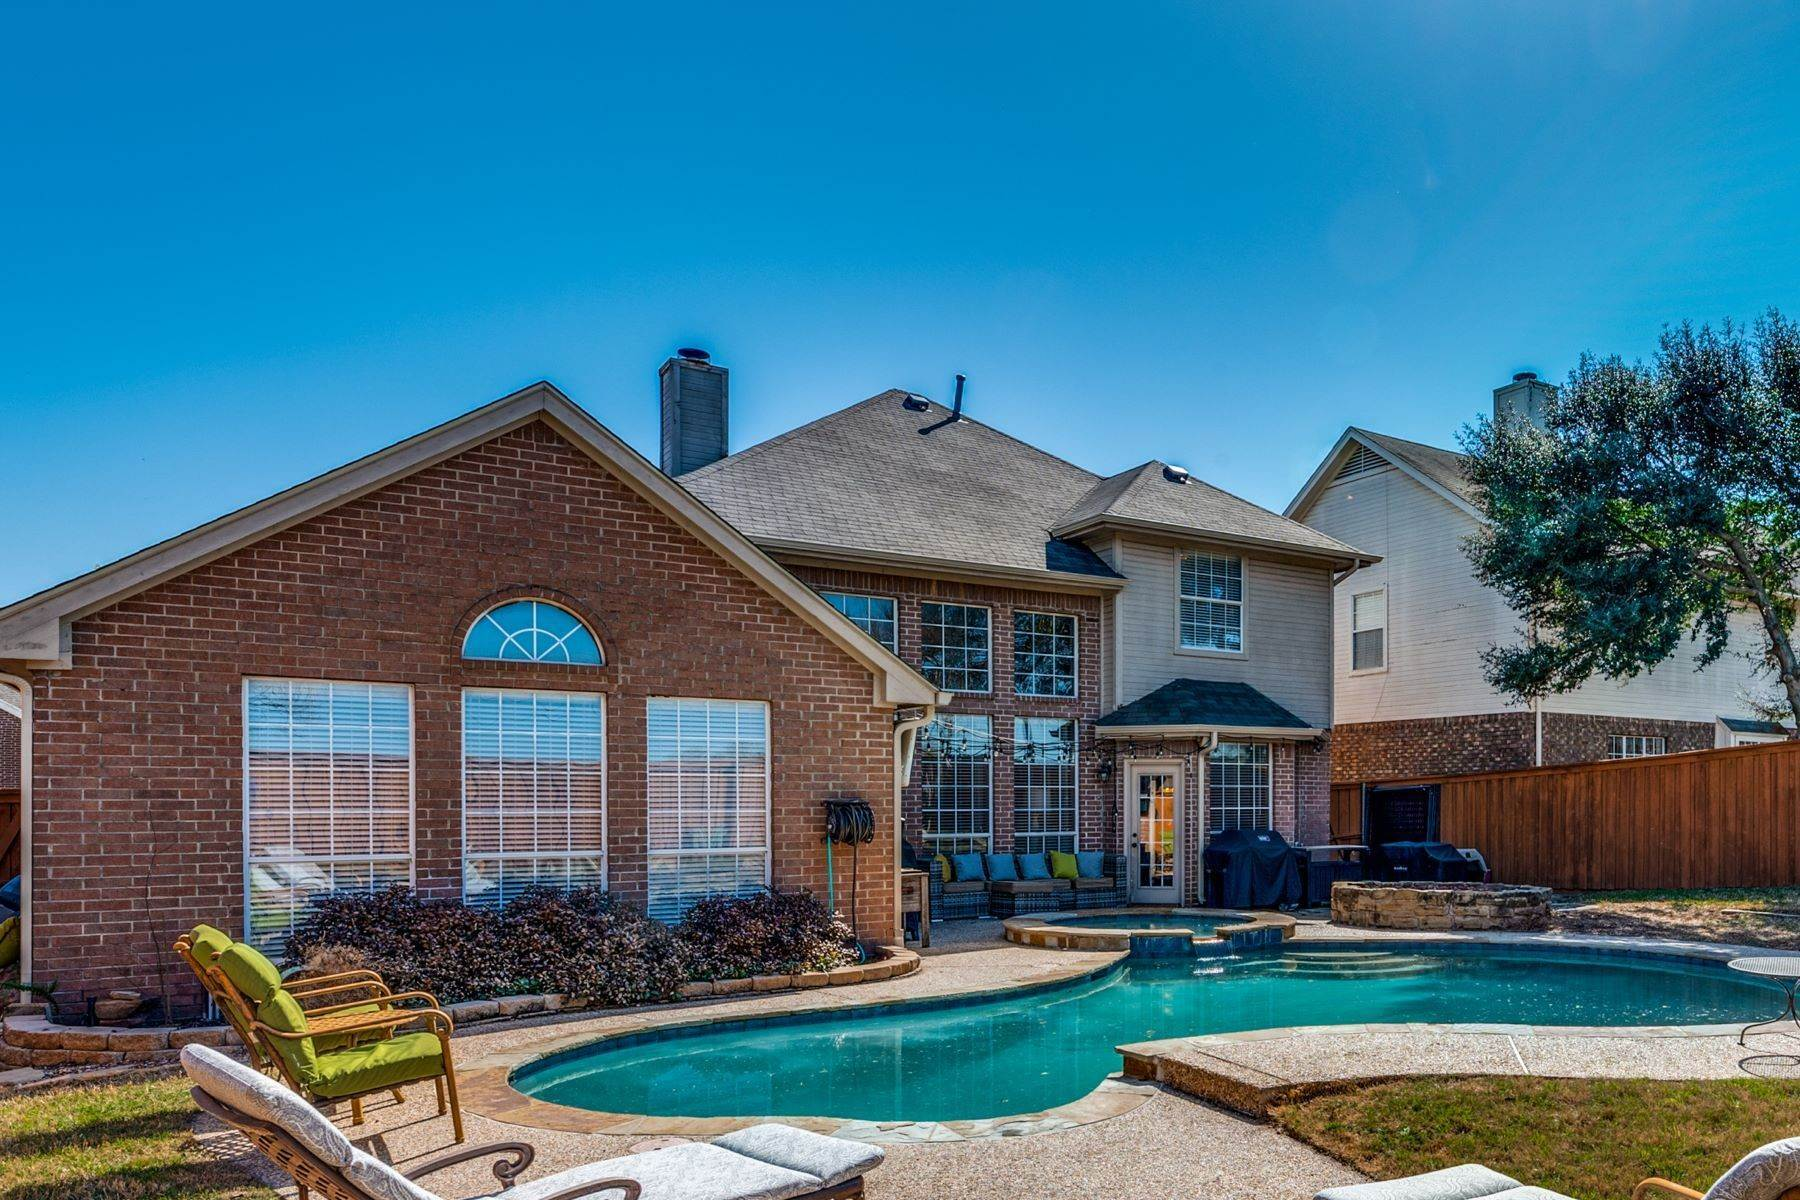 Single Family Homes for Sale at Outdoor Oasis in Arlington! 2207 New Mill Lane Arlington, Texas 76012 United States